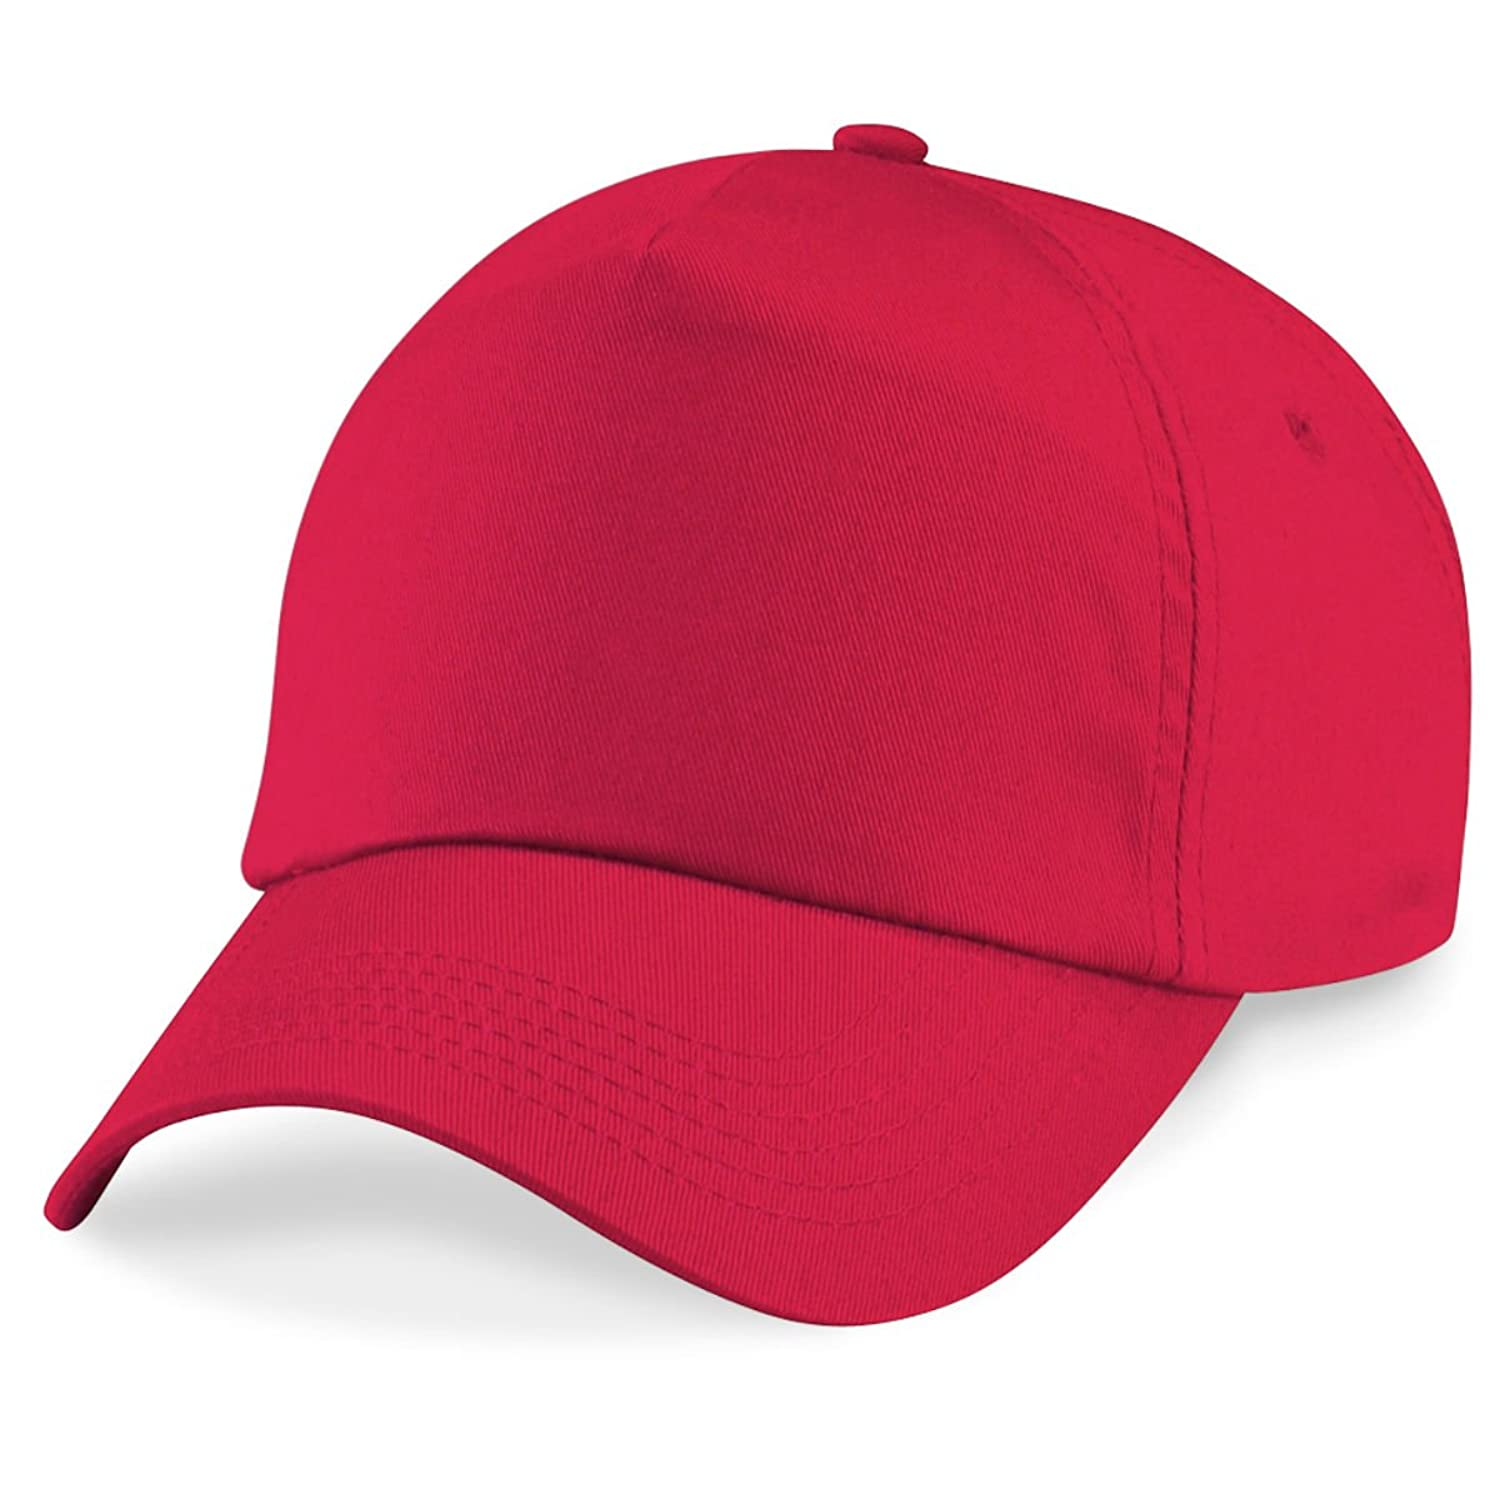 Beechfield 5 panel unlined cotton cap in Bright Red Leuchtend rote